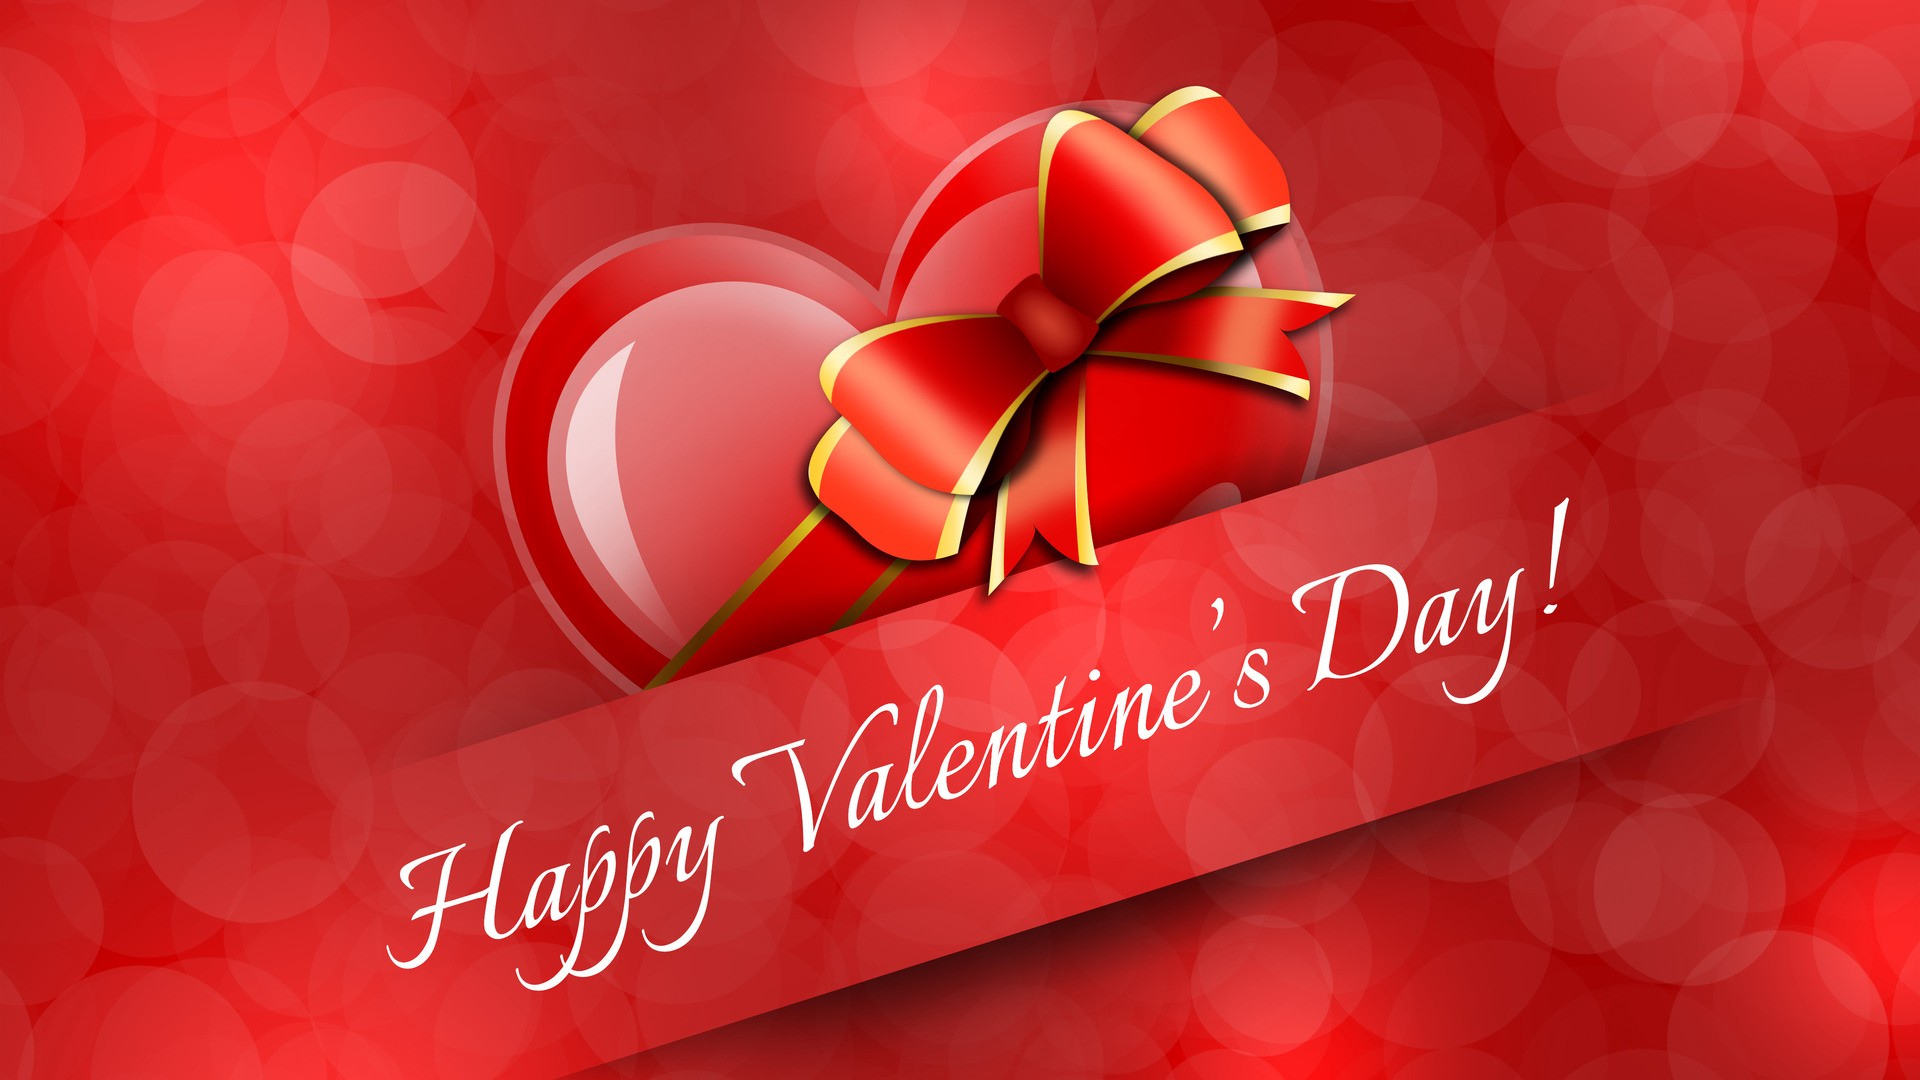 Valentine S Gift Ideas For Couples Special Offer For Valentine S Day Bangalore By Manisha Medium